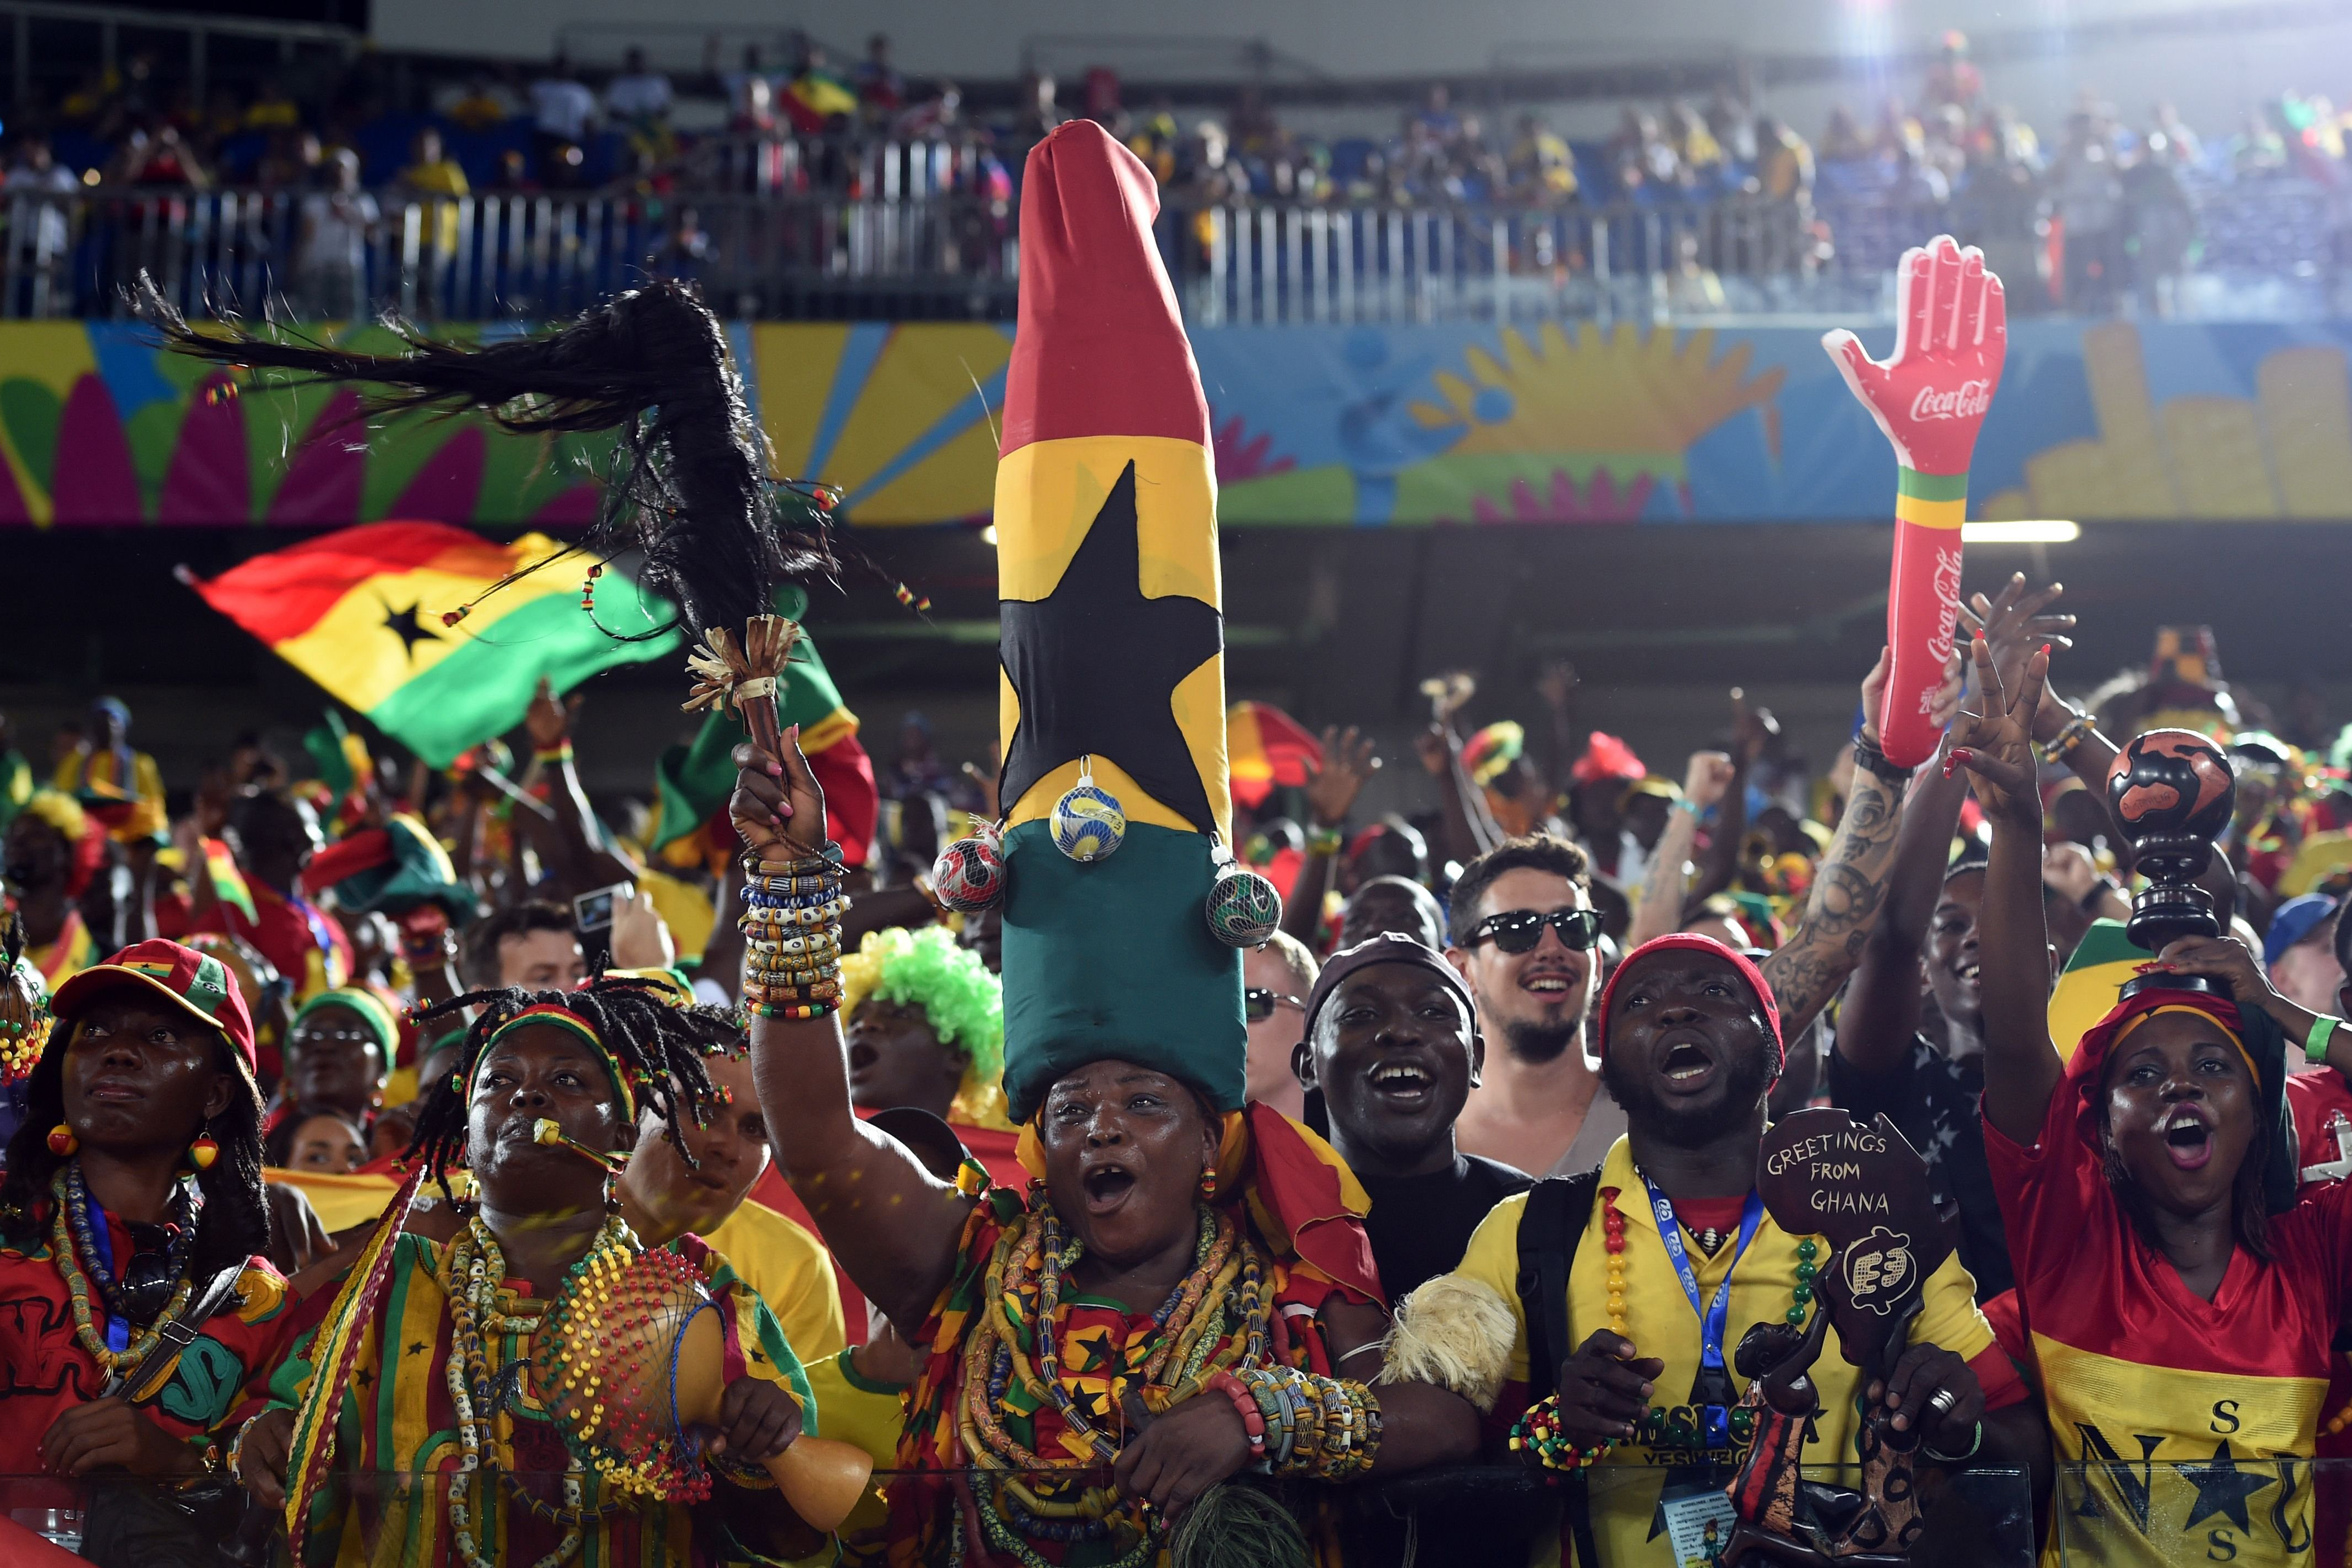 Ghana's fans cheer before the start of a Group G football match between Ghana and US at the Dunas Arena in Natal, Brazil during the 2014 FIFA World Cup on June 16, 2014.